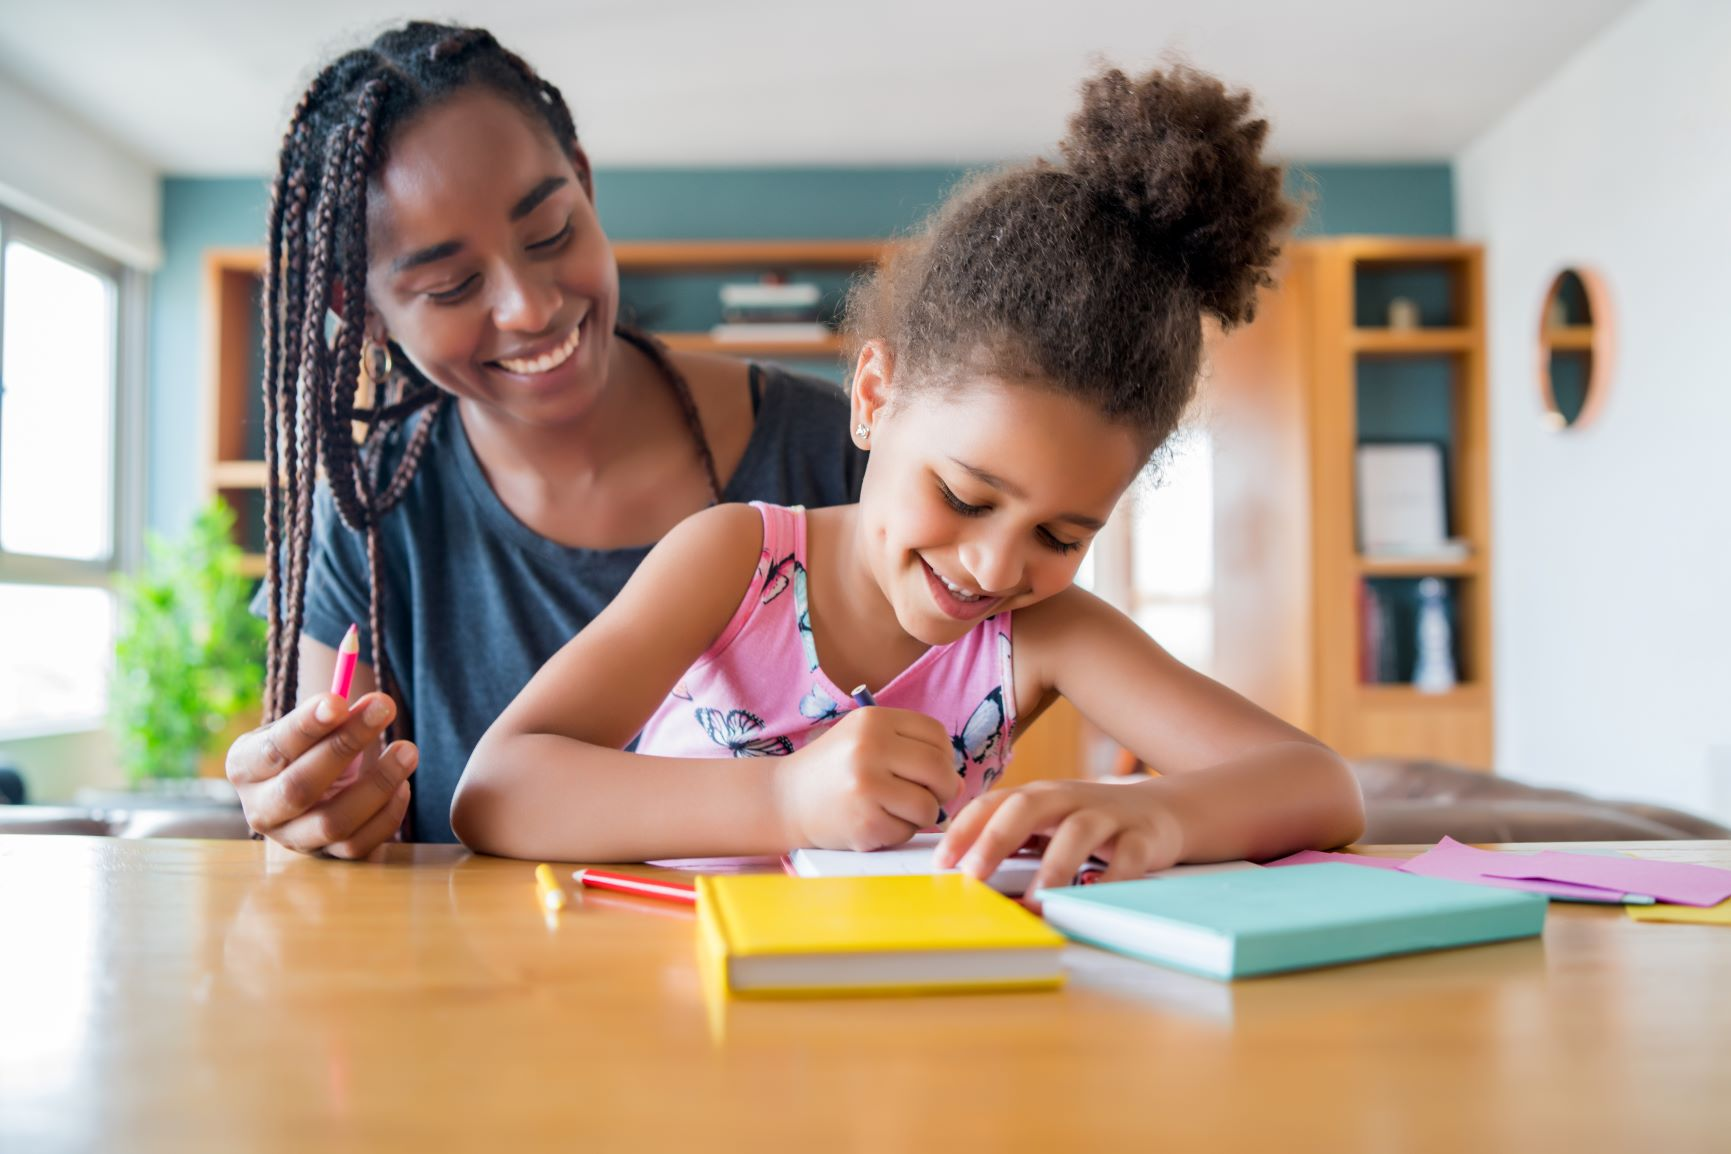 mother-helping-supporting-her-daughter-with-homeschool-while-staying-home-new-normal-lifestyle-concept